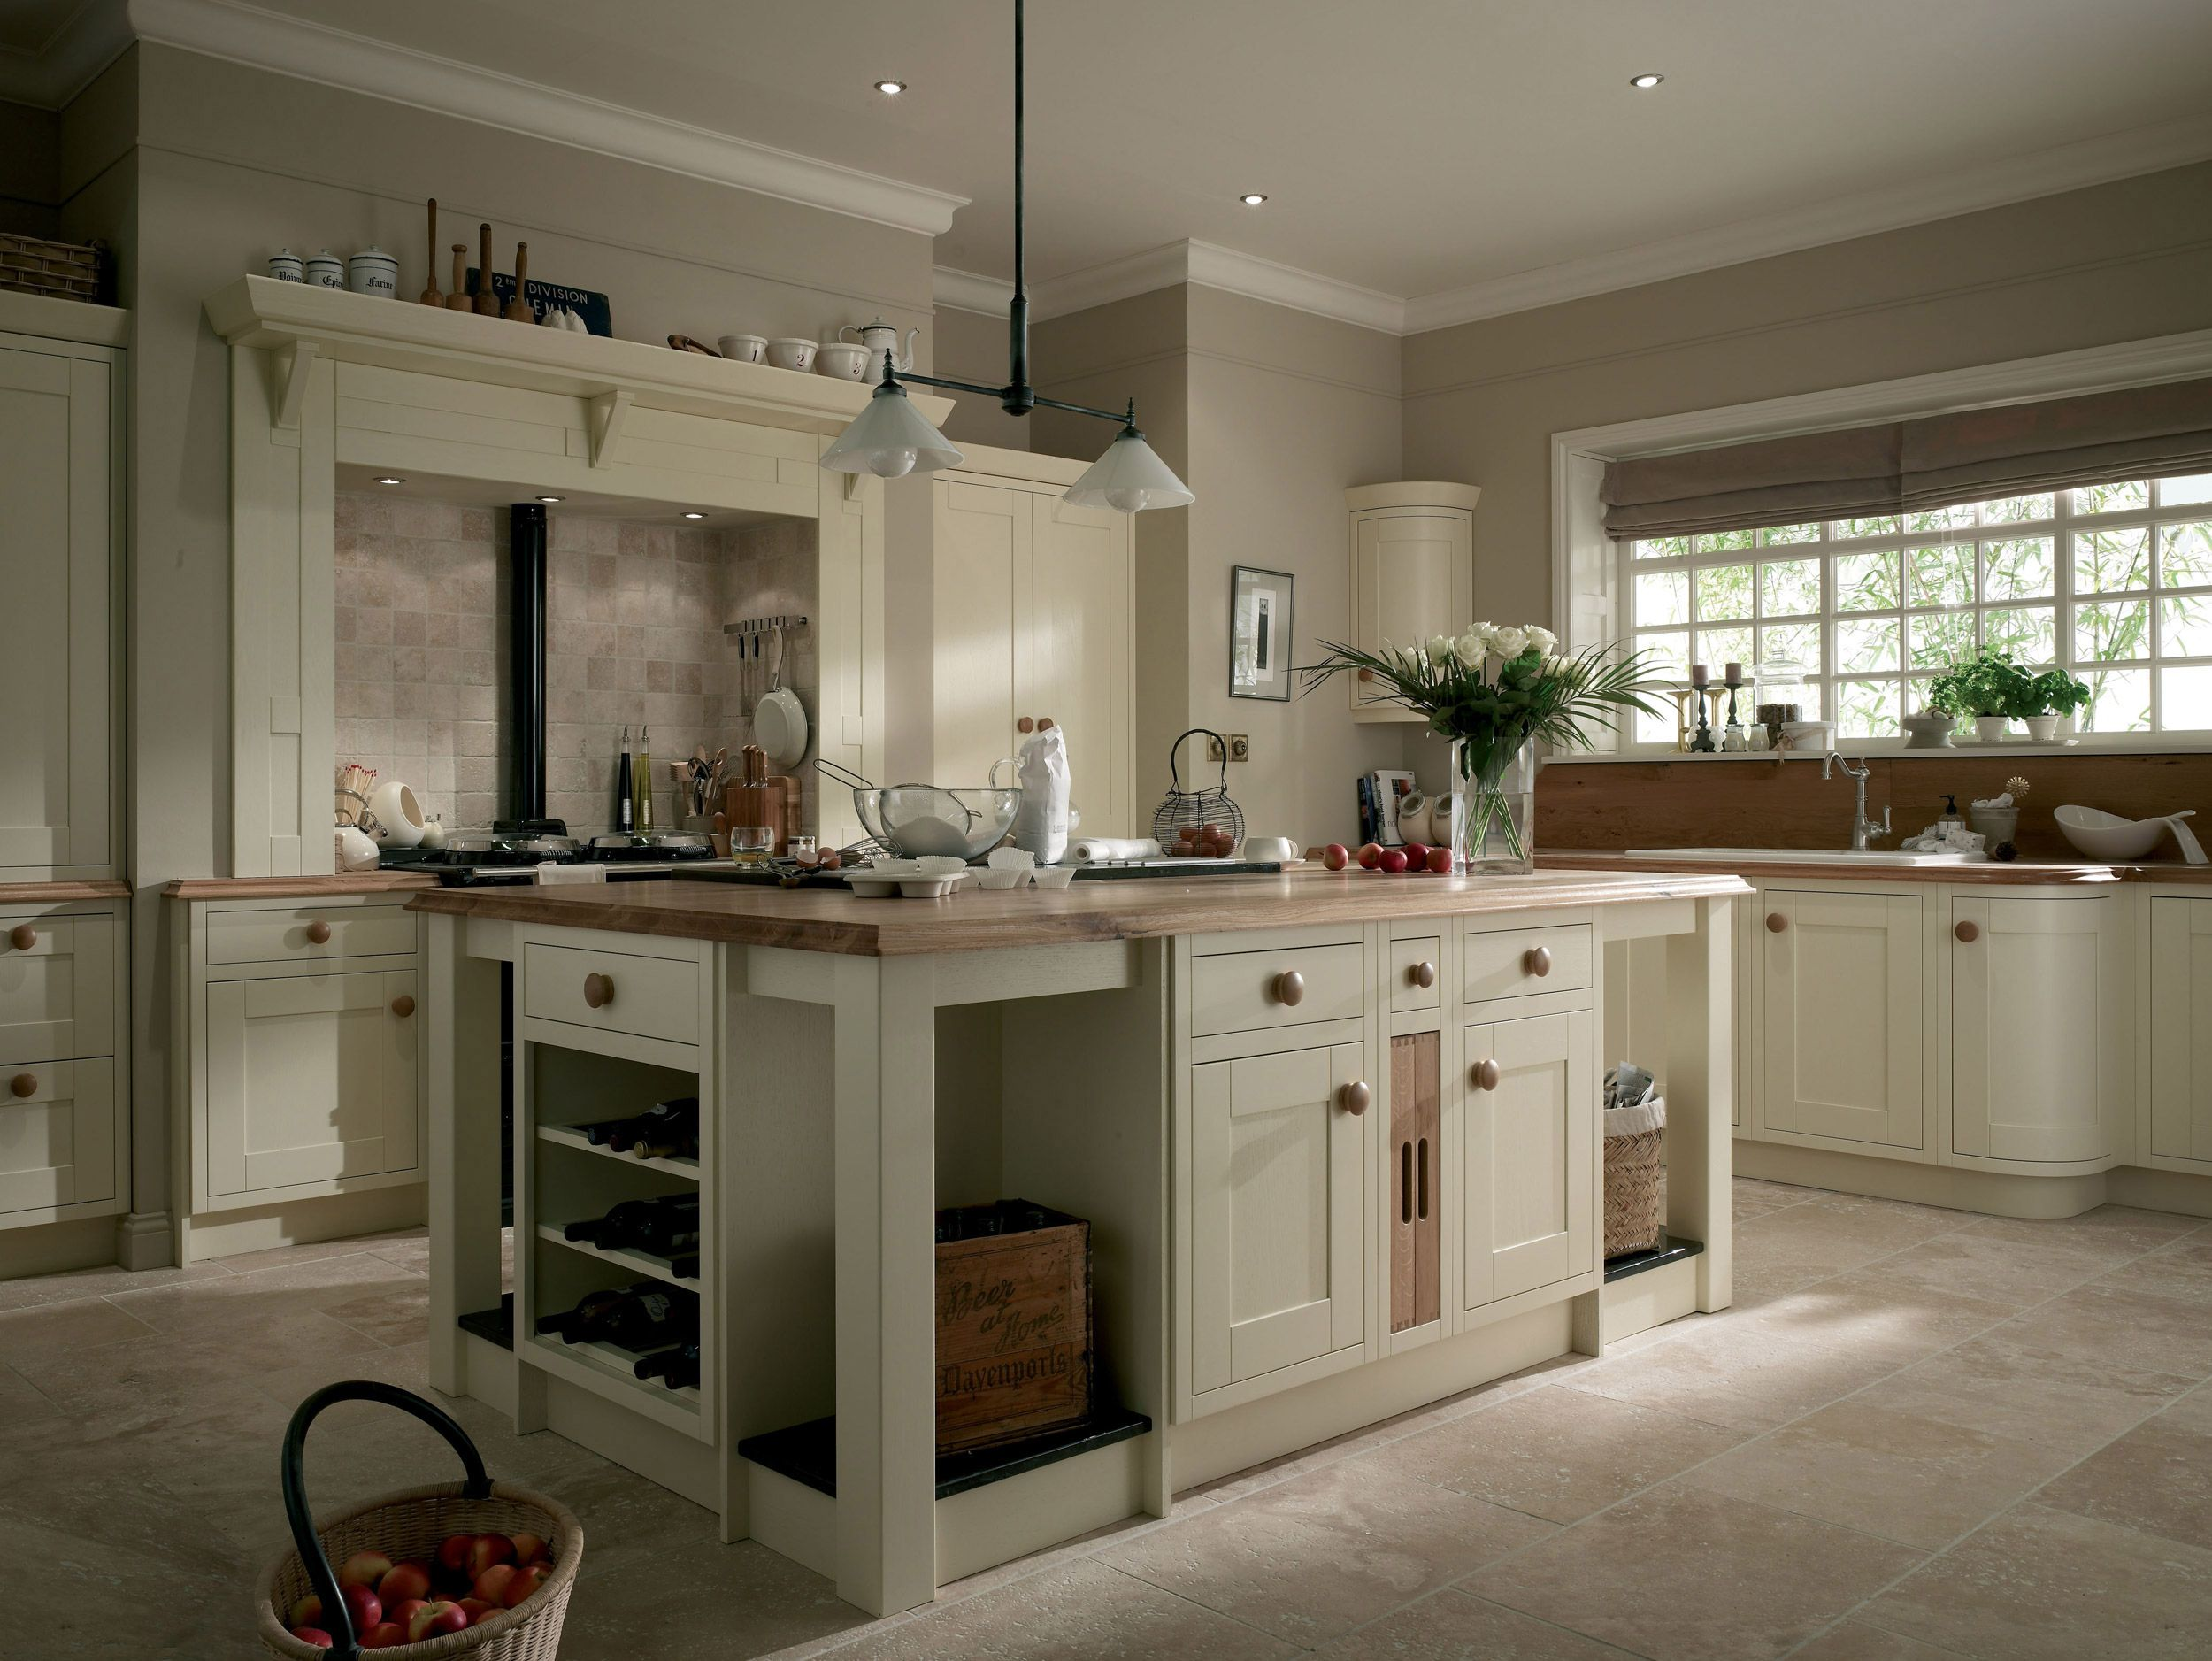 White Country Kitchen Design With Wooden Countertop And